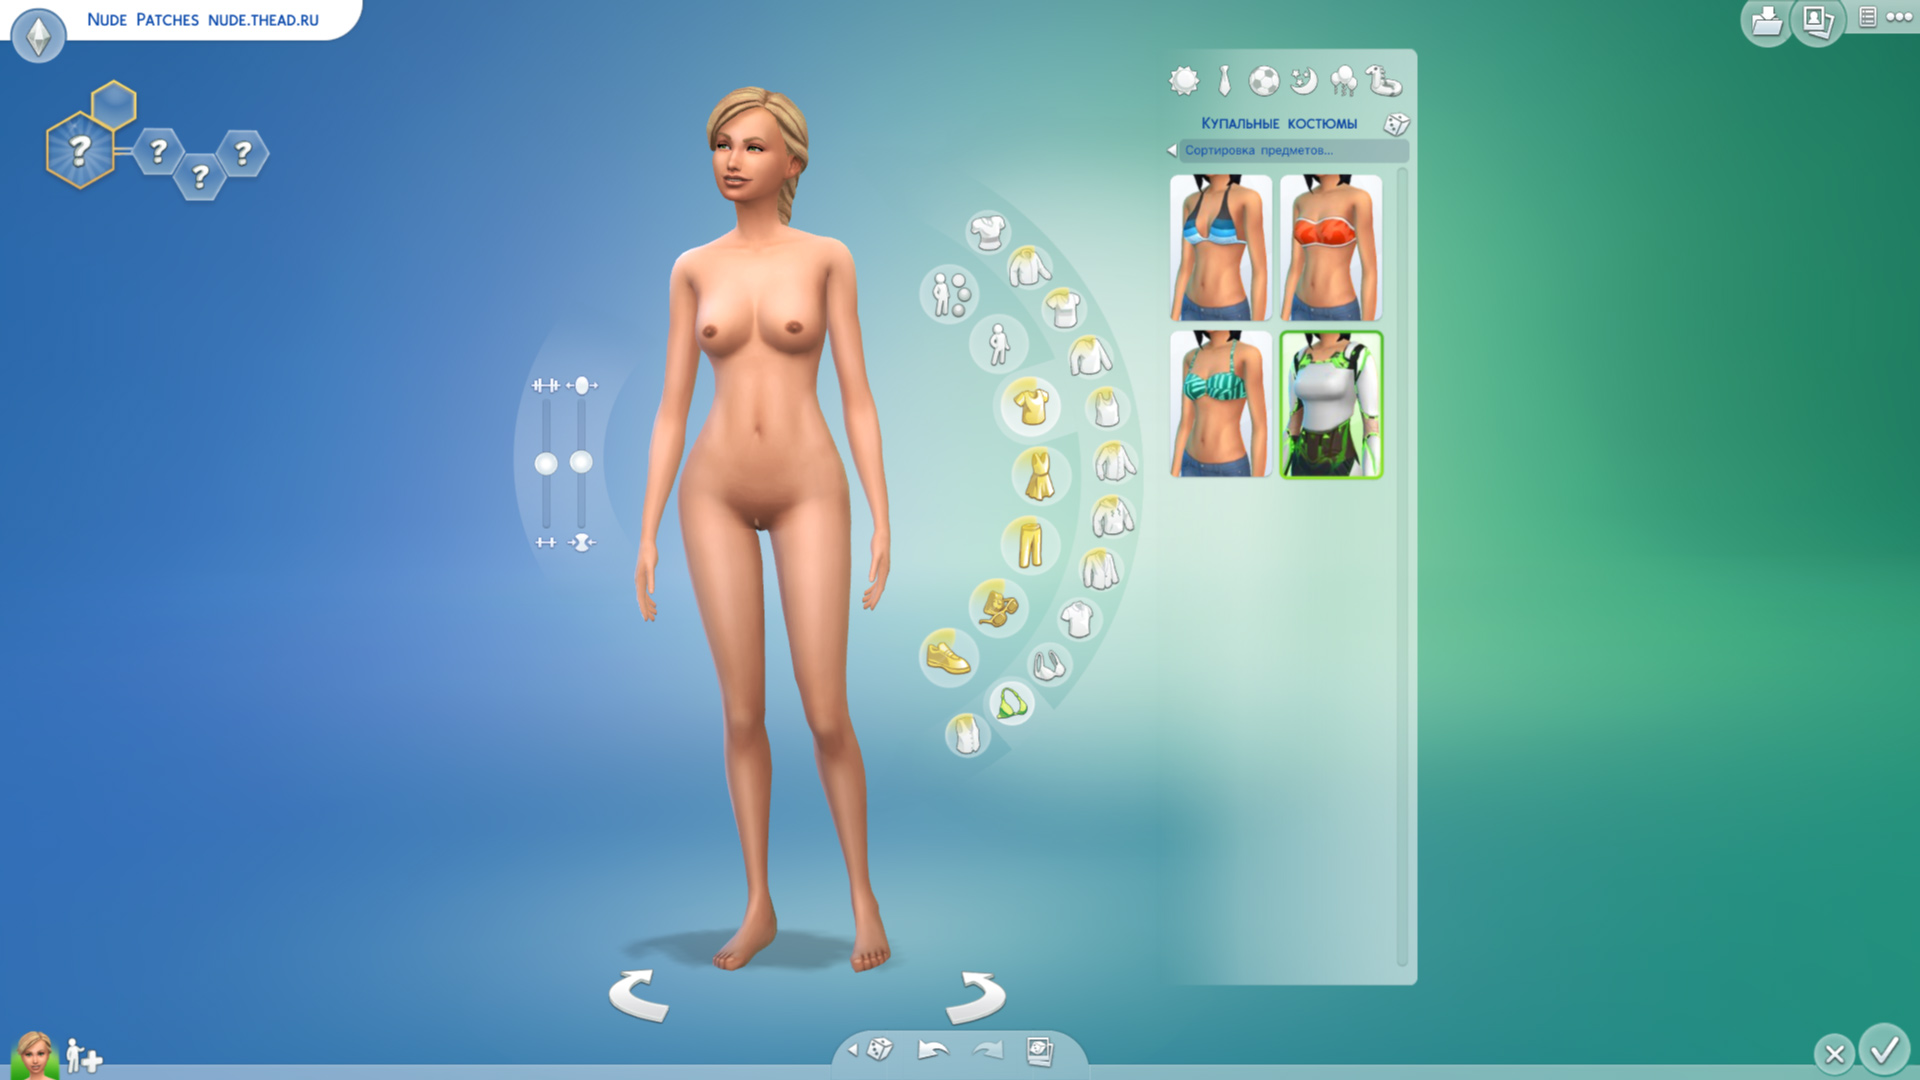 The sims 4 sexuality nude xxx images